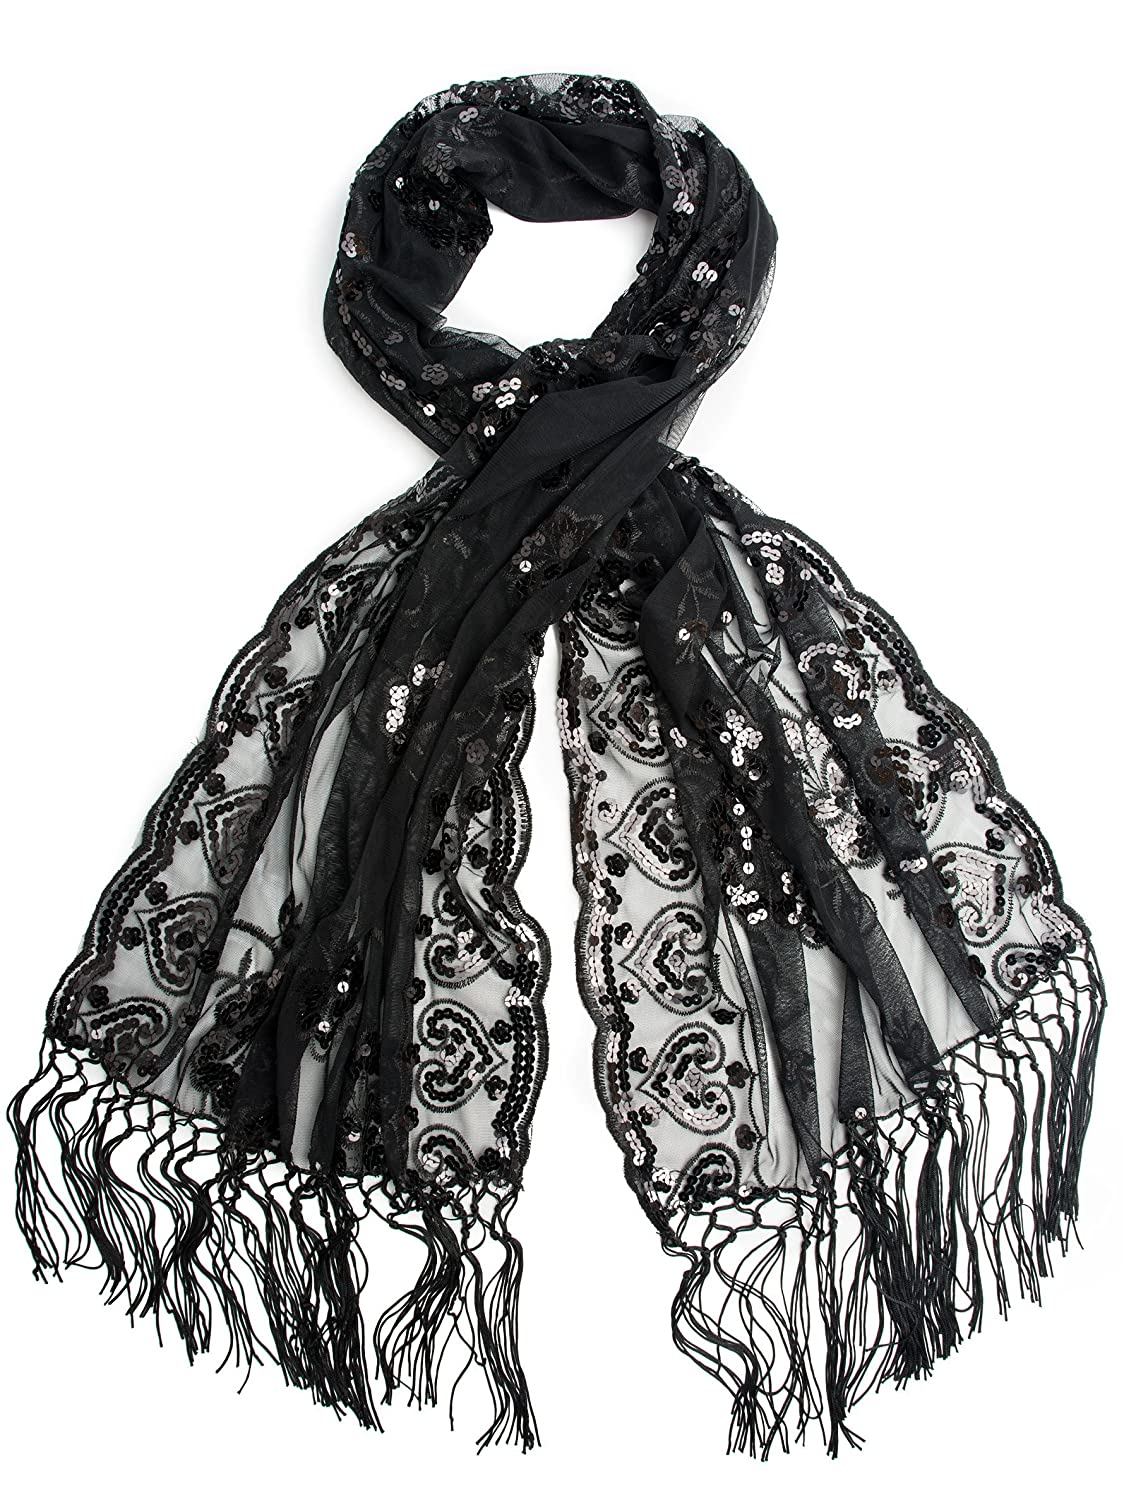 1920s Style Wraps Black Madison Shawl Long Fringe Sequin Evening Wrap $14.95 AT vintagedancer.com